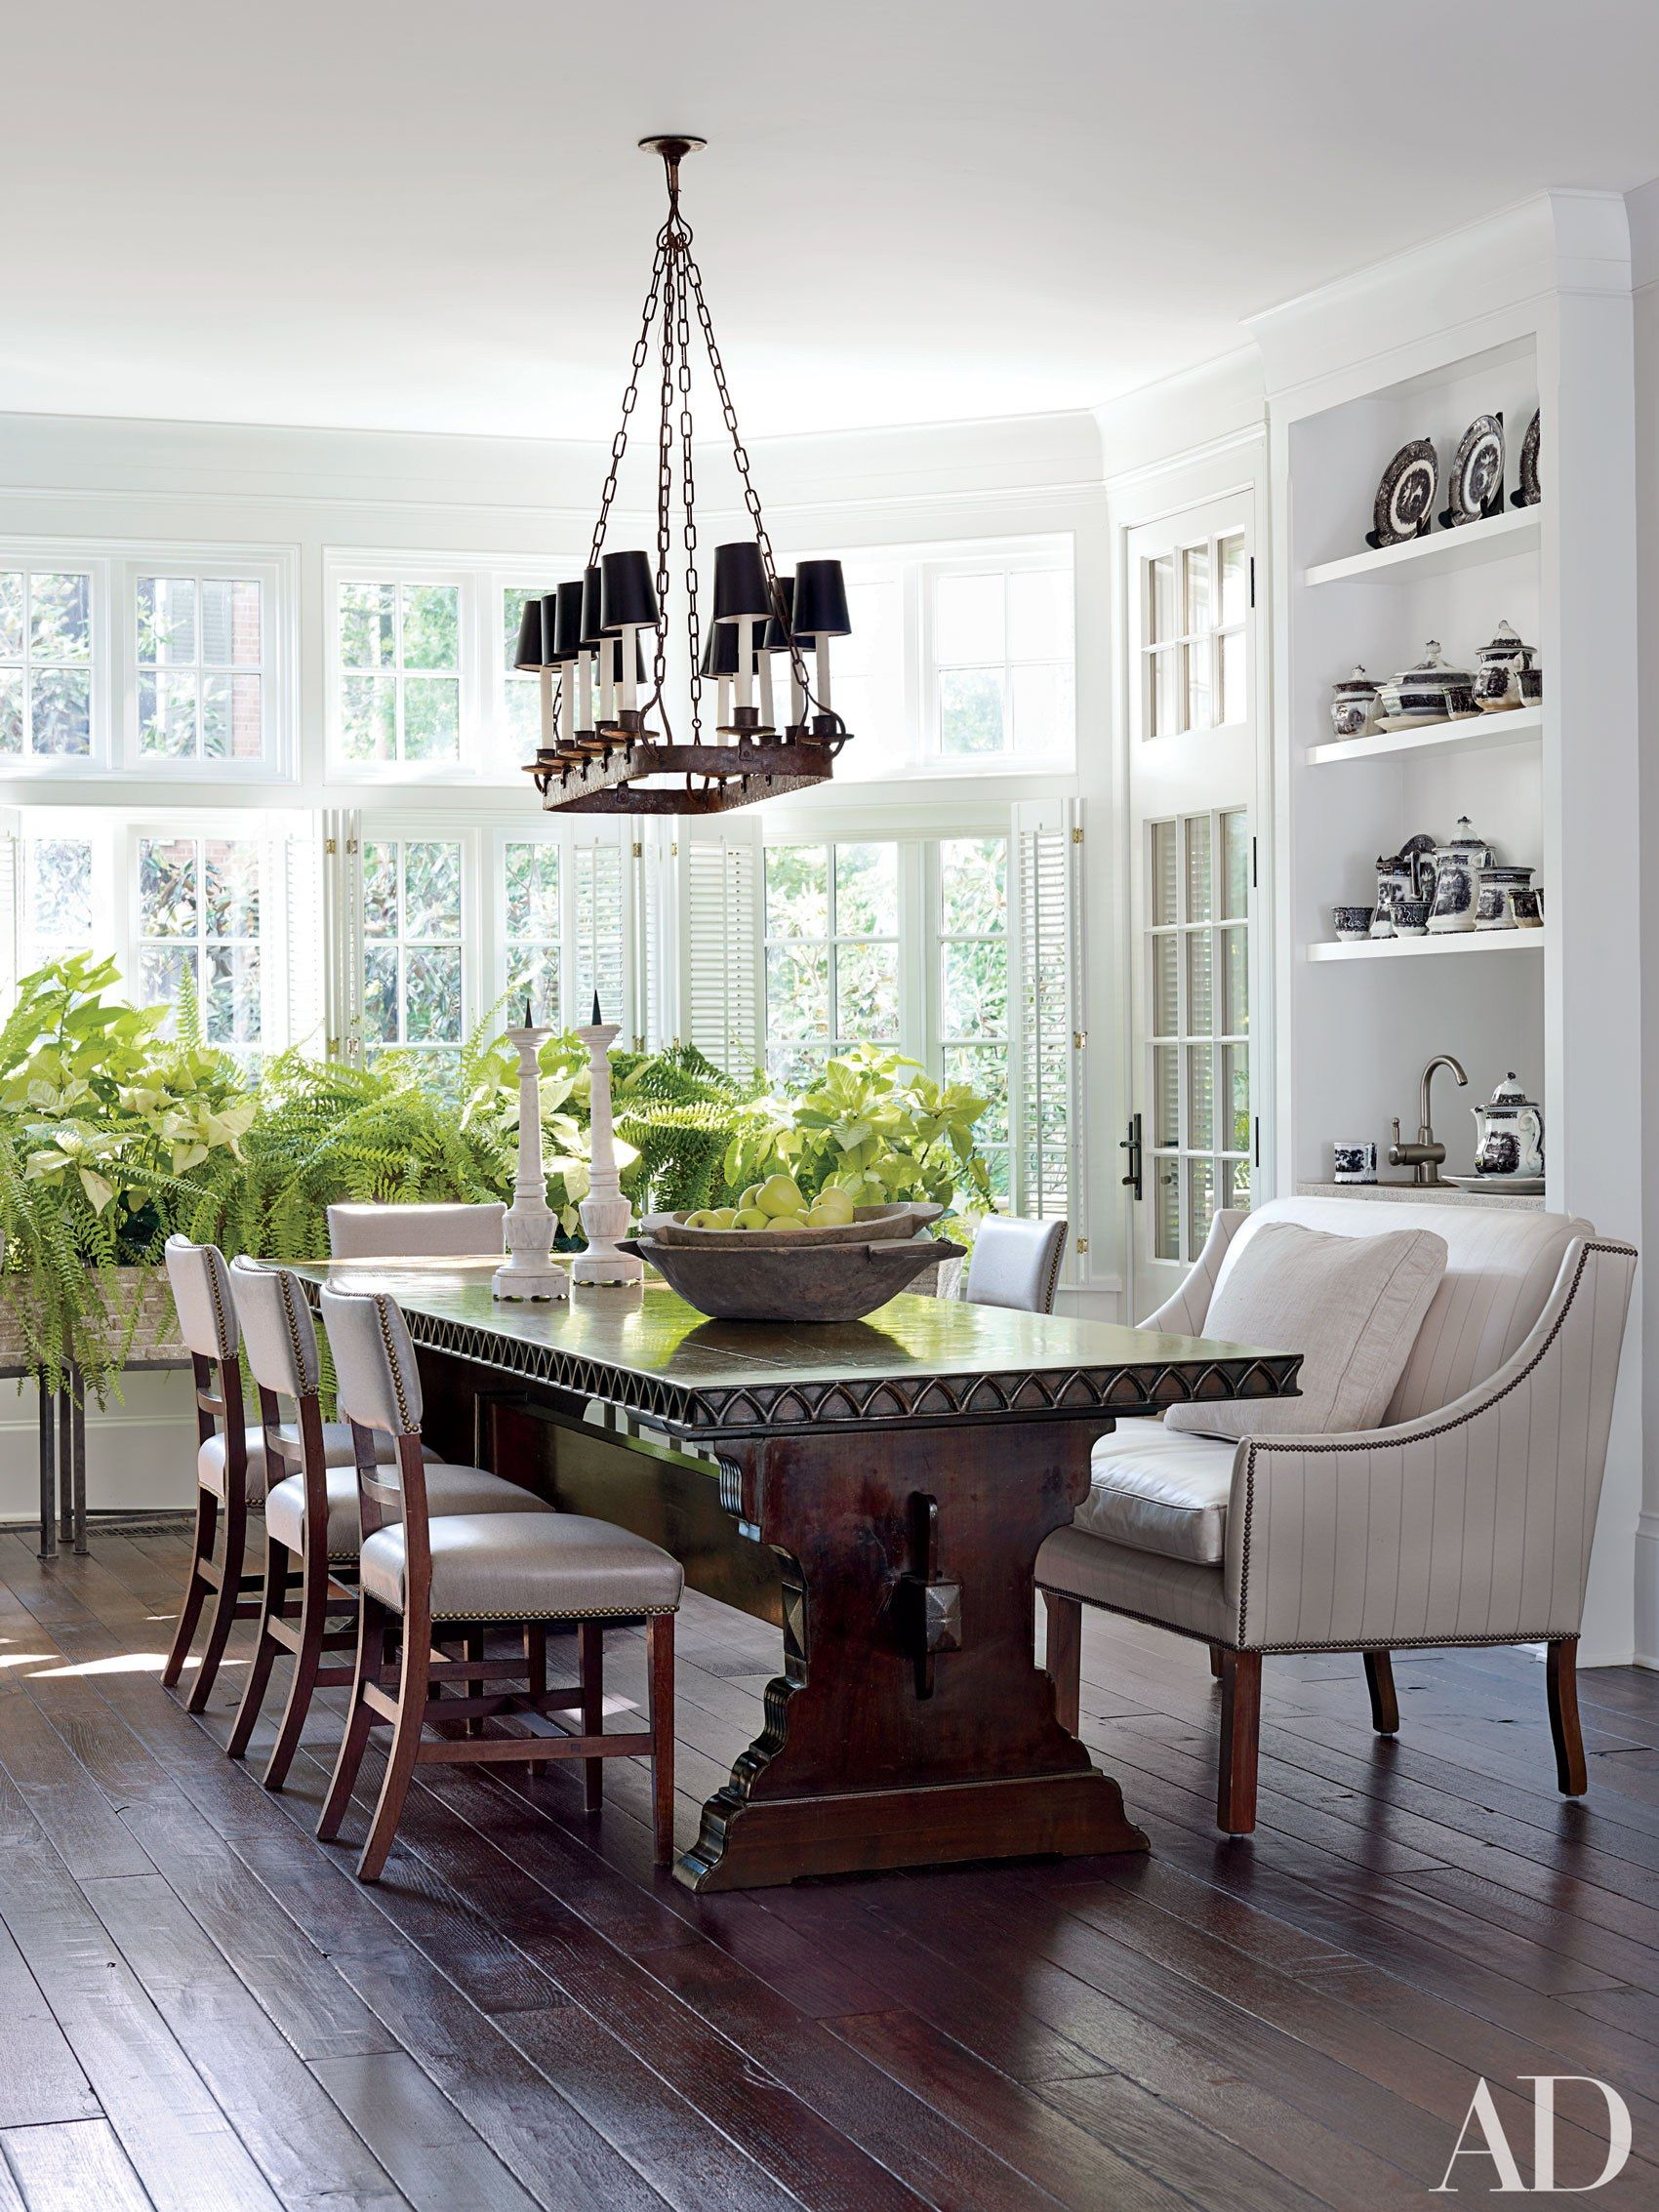 Interior Designers on Great Design for Every